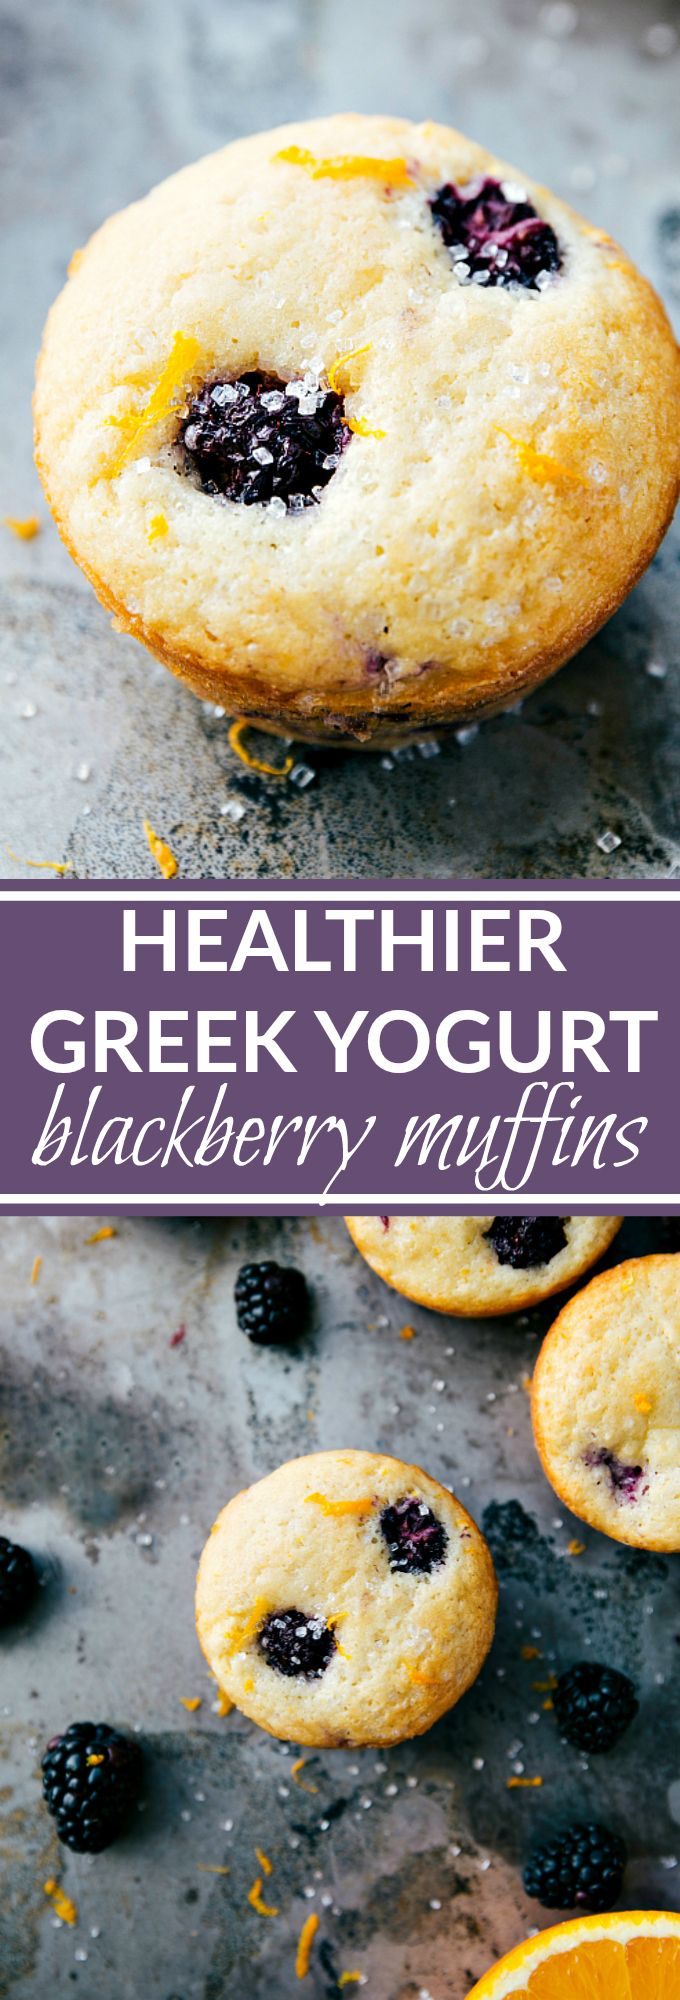 GREEK YOGURT BLACKBERRY MUFFINS! A healthier version of blackberry muffins with a hint of orange flavor. Lower sugar, added Greek yogurt, no butter, healthier oils, and all with NO sacrifice of flavor!